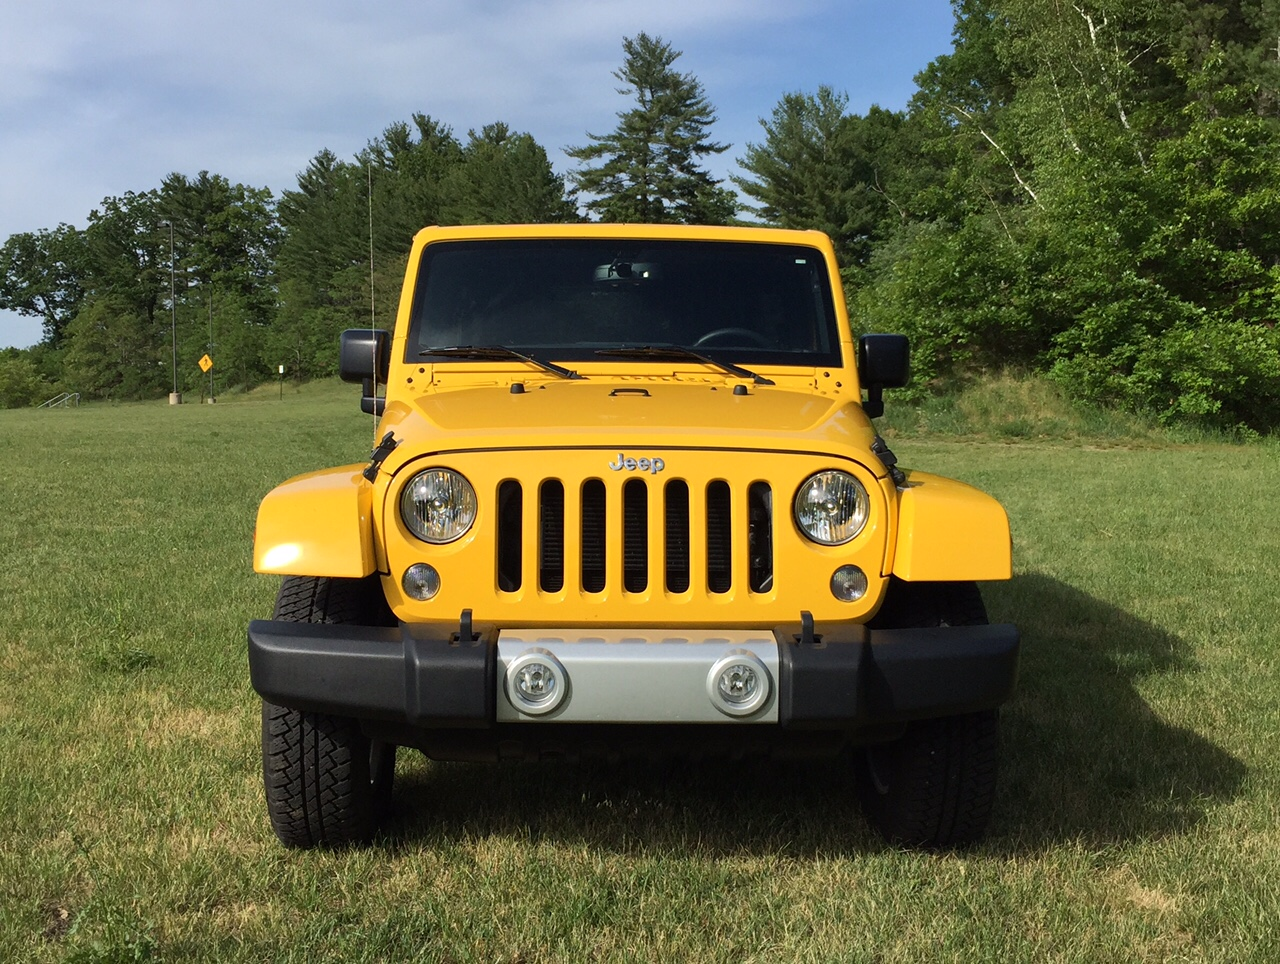 2015 Jeep Wrangler Unlimited Sahara 4x4 Front